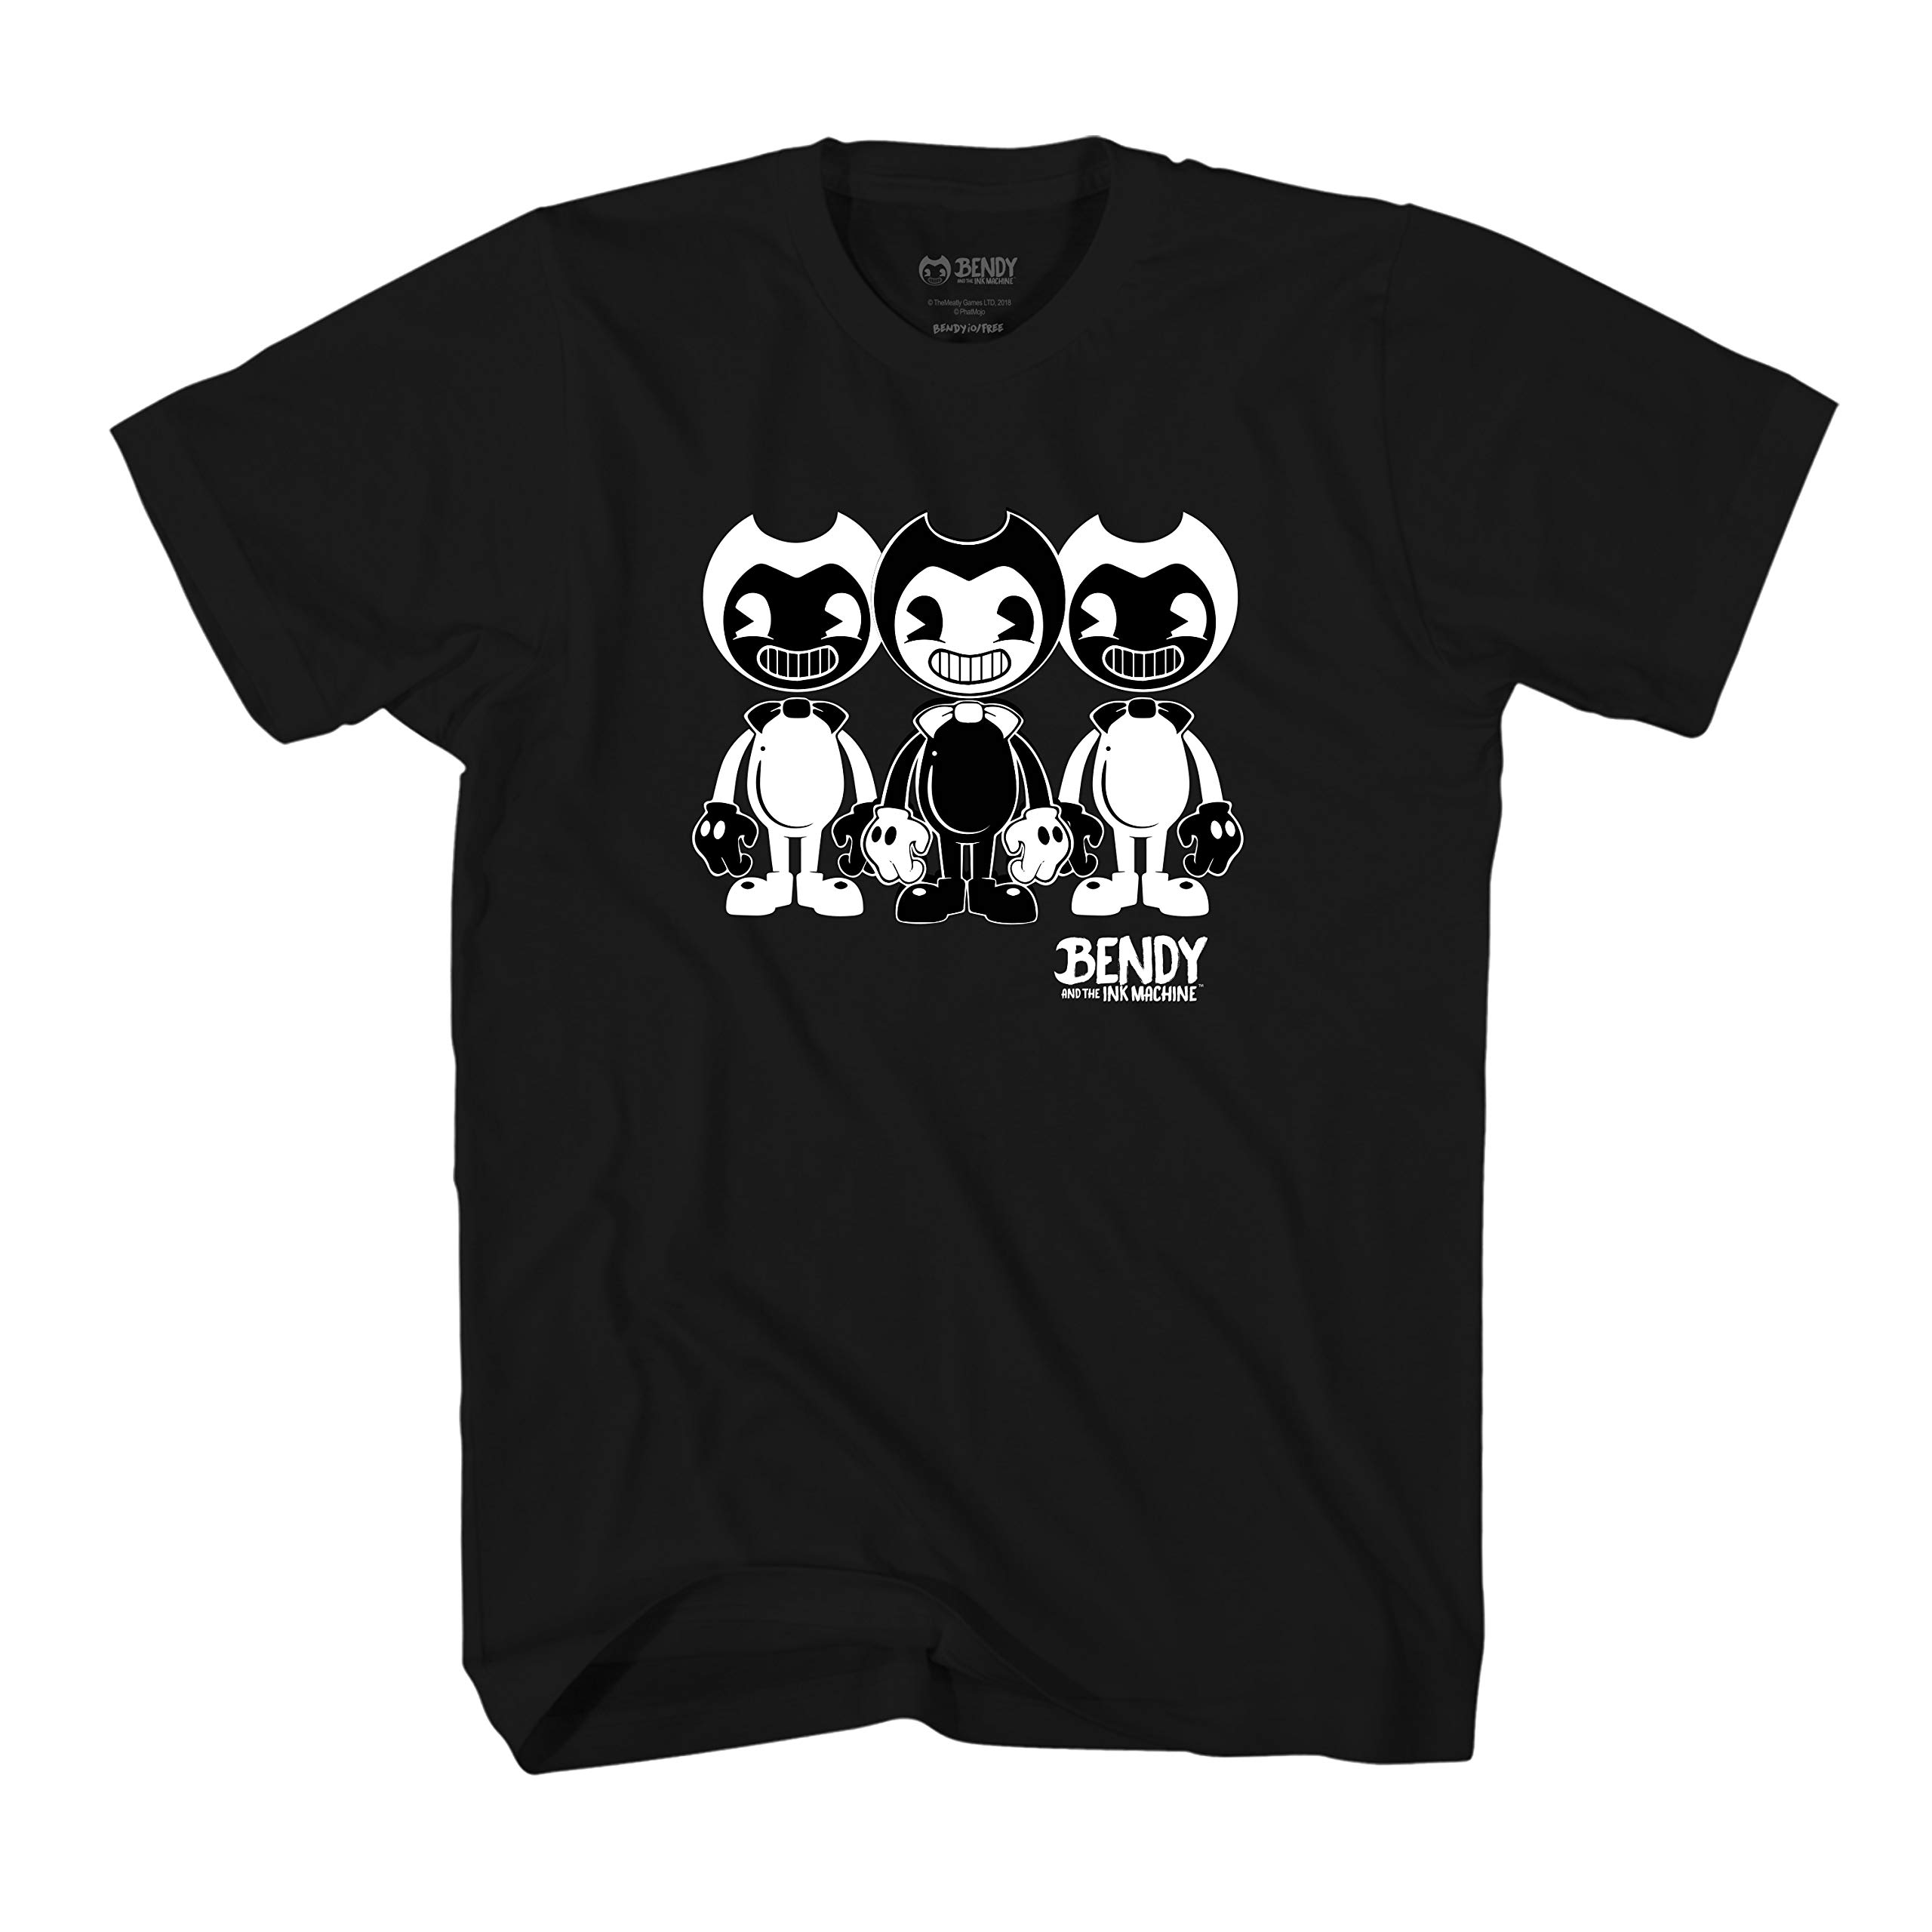 Bendy and the Ink Machine Shirt - Official Bendy T-Shirt - Black and White Bendy Boys T-Shirt (Black, Small)